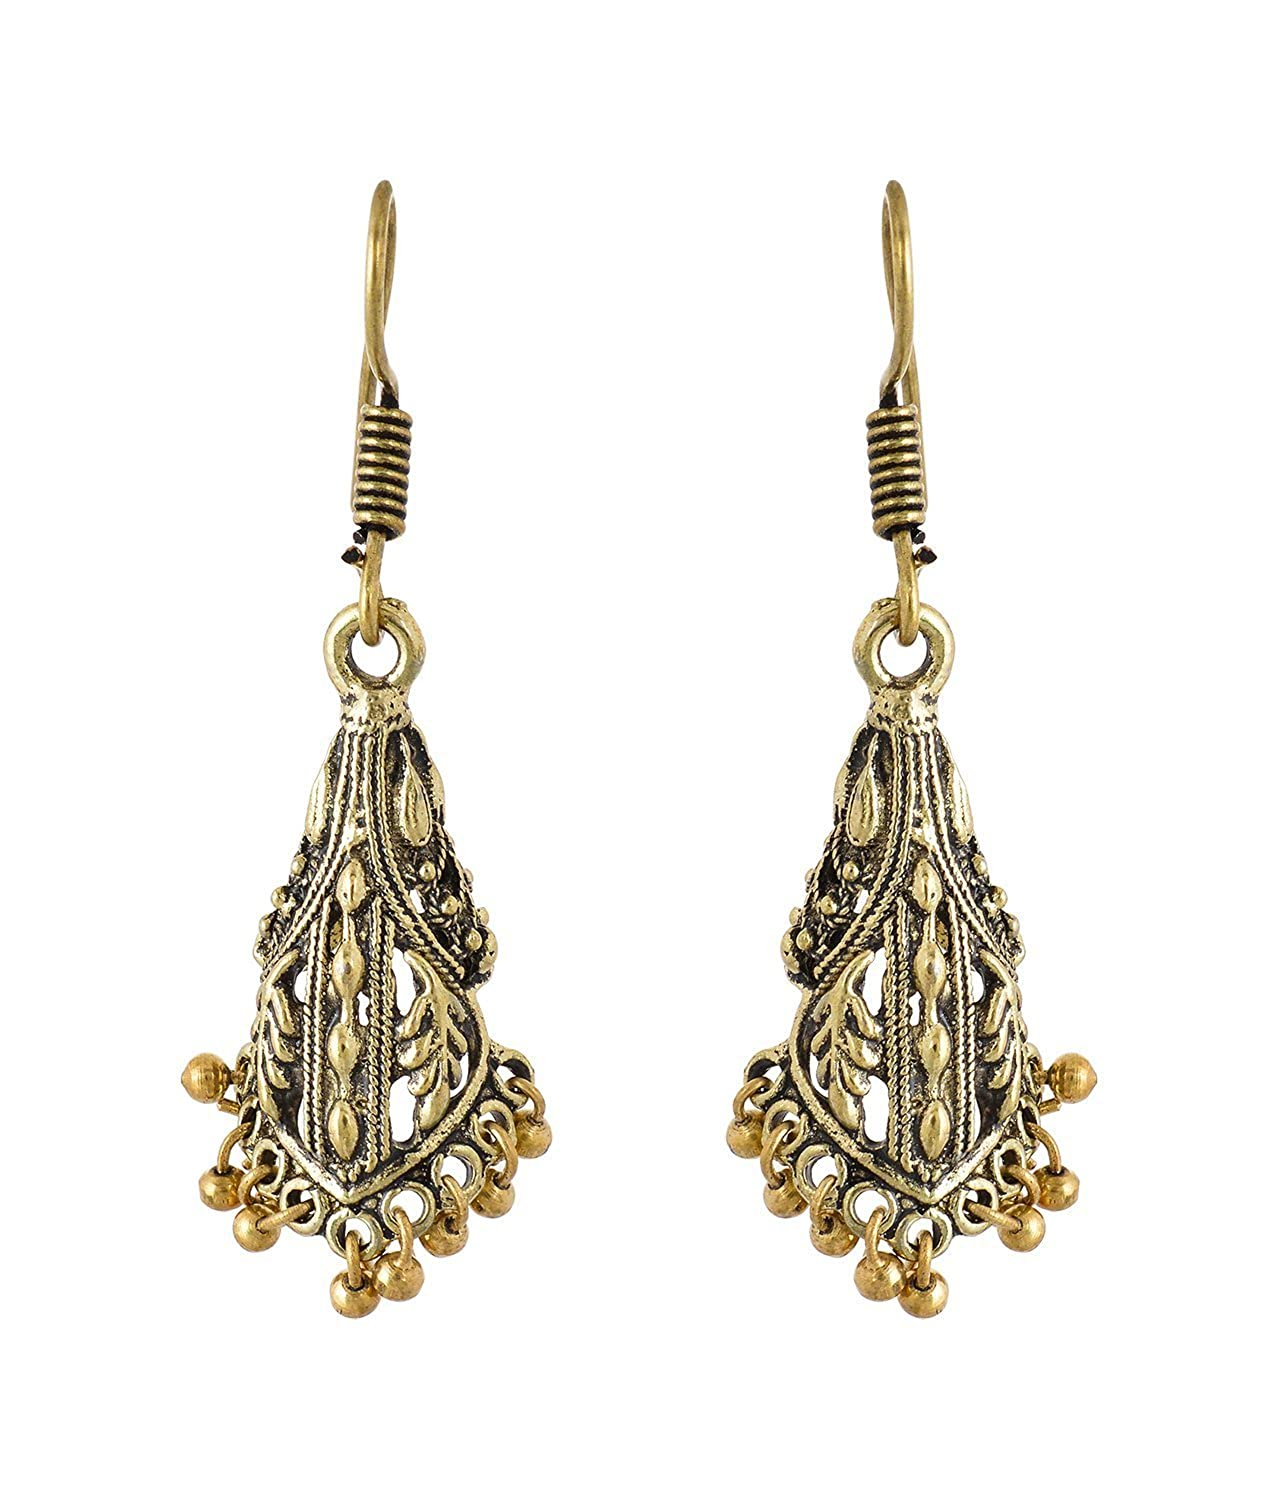 Subharpit Golden Color Metal Traditonal Indian Dangle Earring for Woman /& Girls